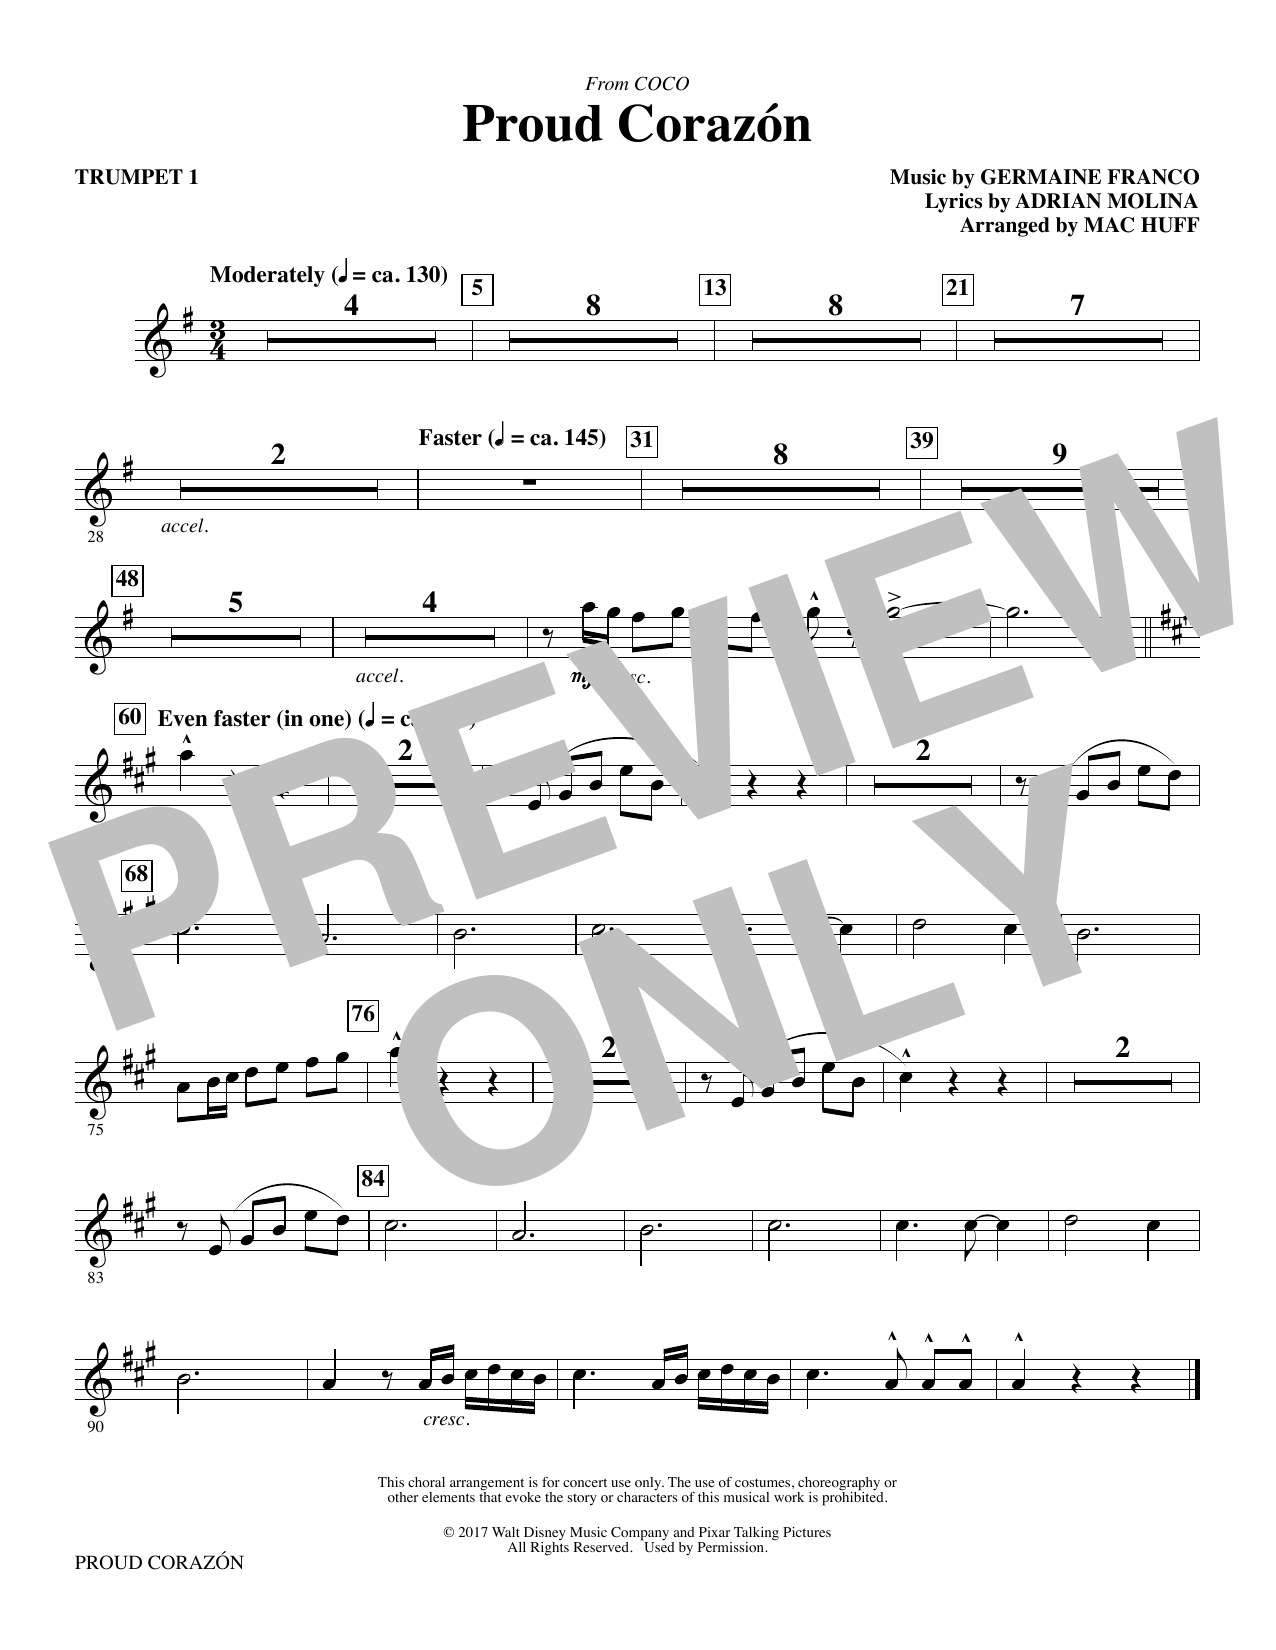 Germaine Franco & Adrian Molina Proud Corazon (from Coco) (arr. Mac Huff) - Trumpet 1 sheet music notes and chords. Download Printable PDF.